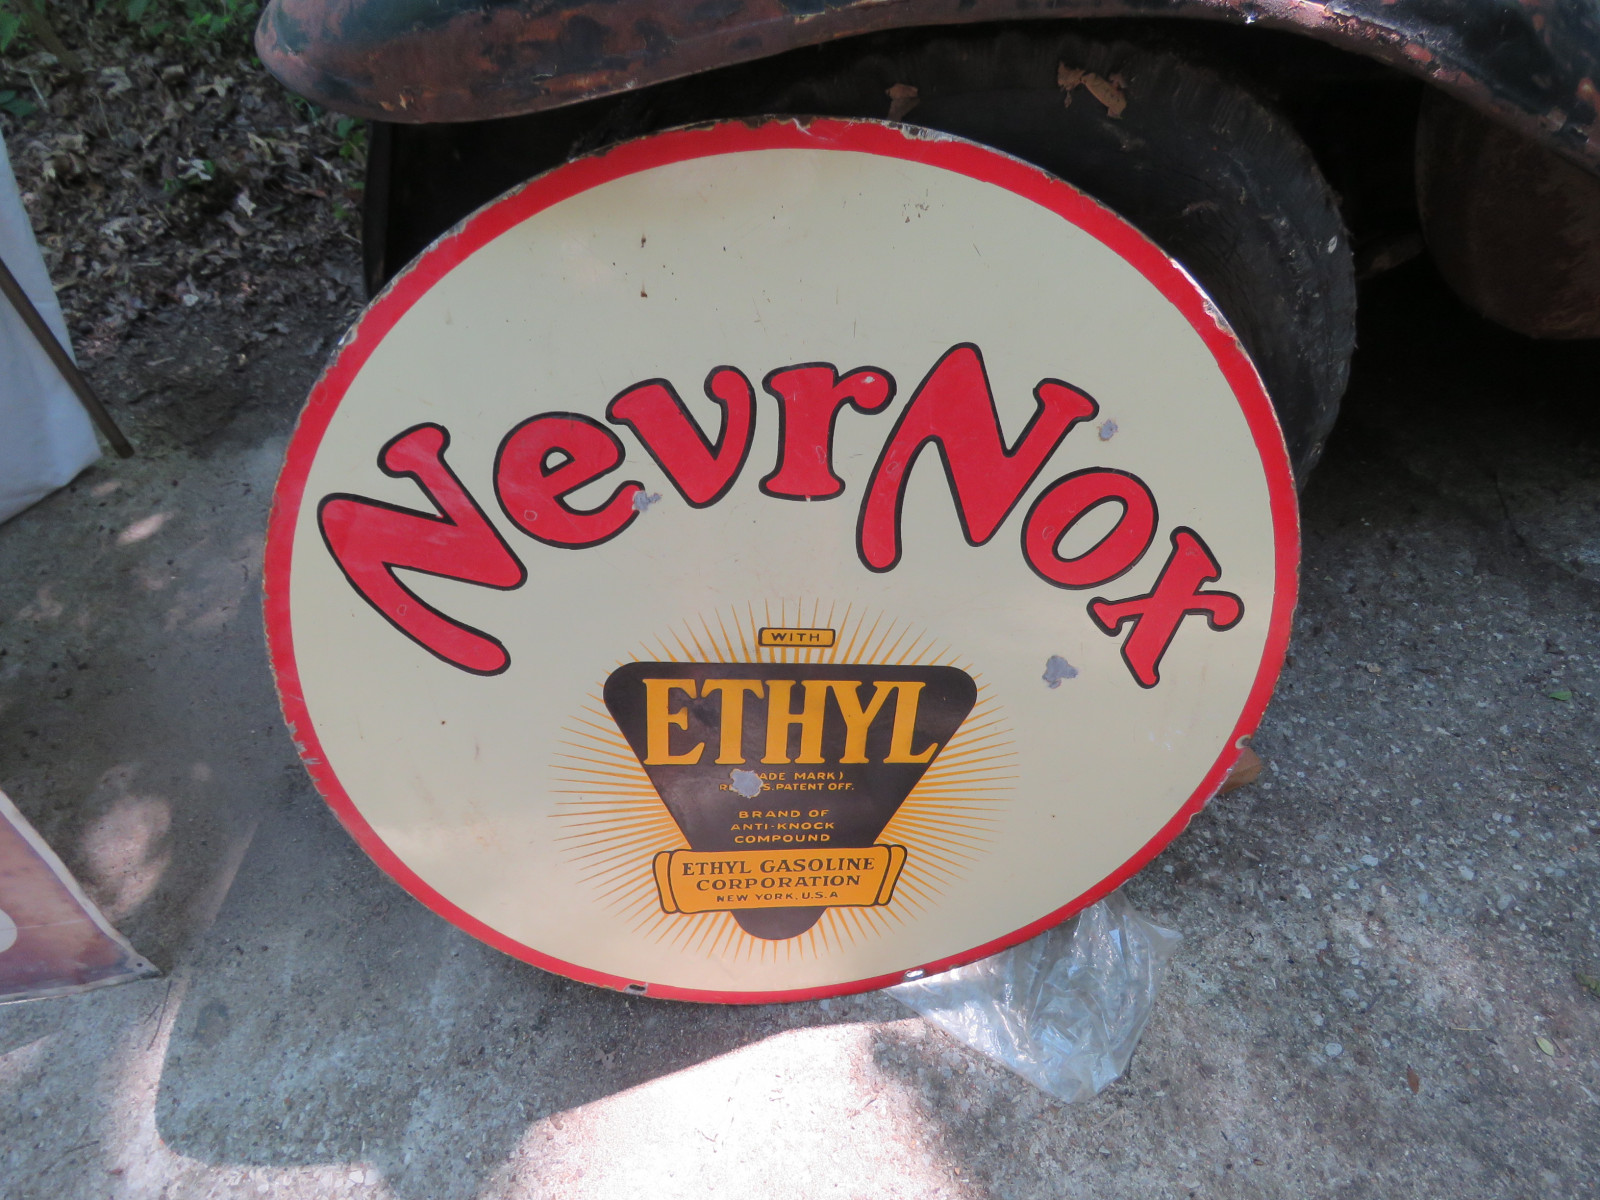 Never-Nox DS Porcelain Sign 29 inches Round - Image 1